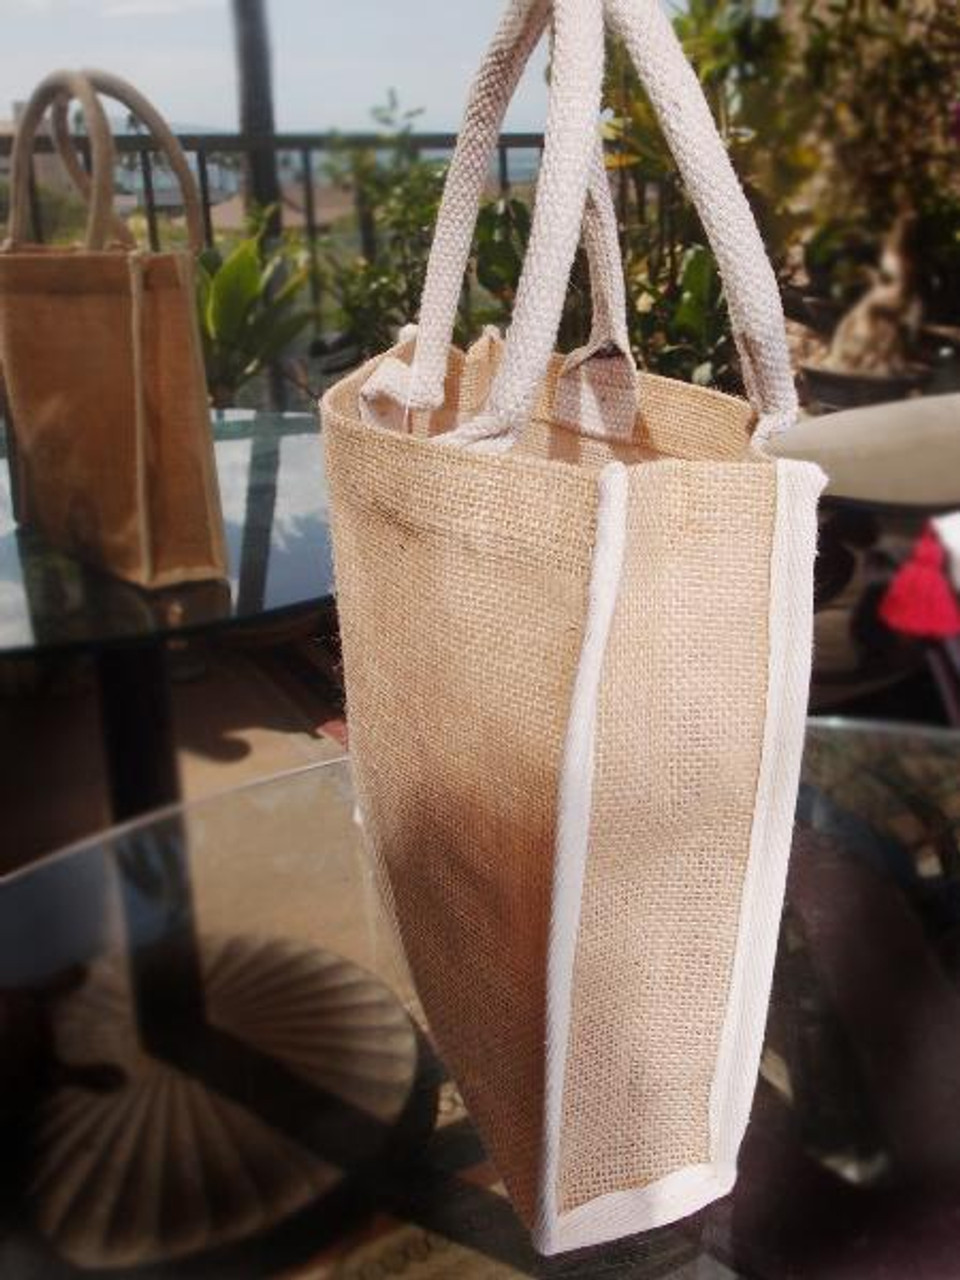 """Wholesale Gift Packaging Supplier, Jute Tote with White Cotton Trim 10 1/4"""" W x 9"""" H x 3"""" Gusset, B874-71"""